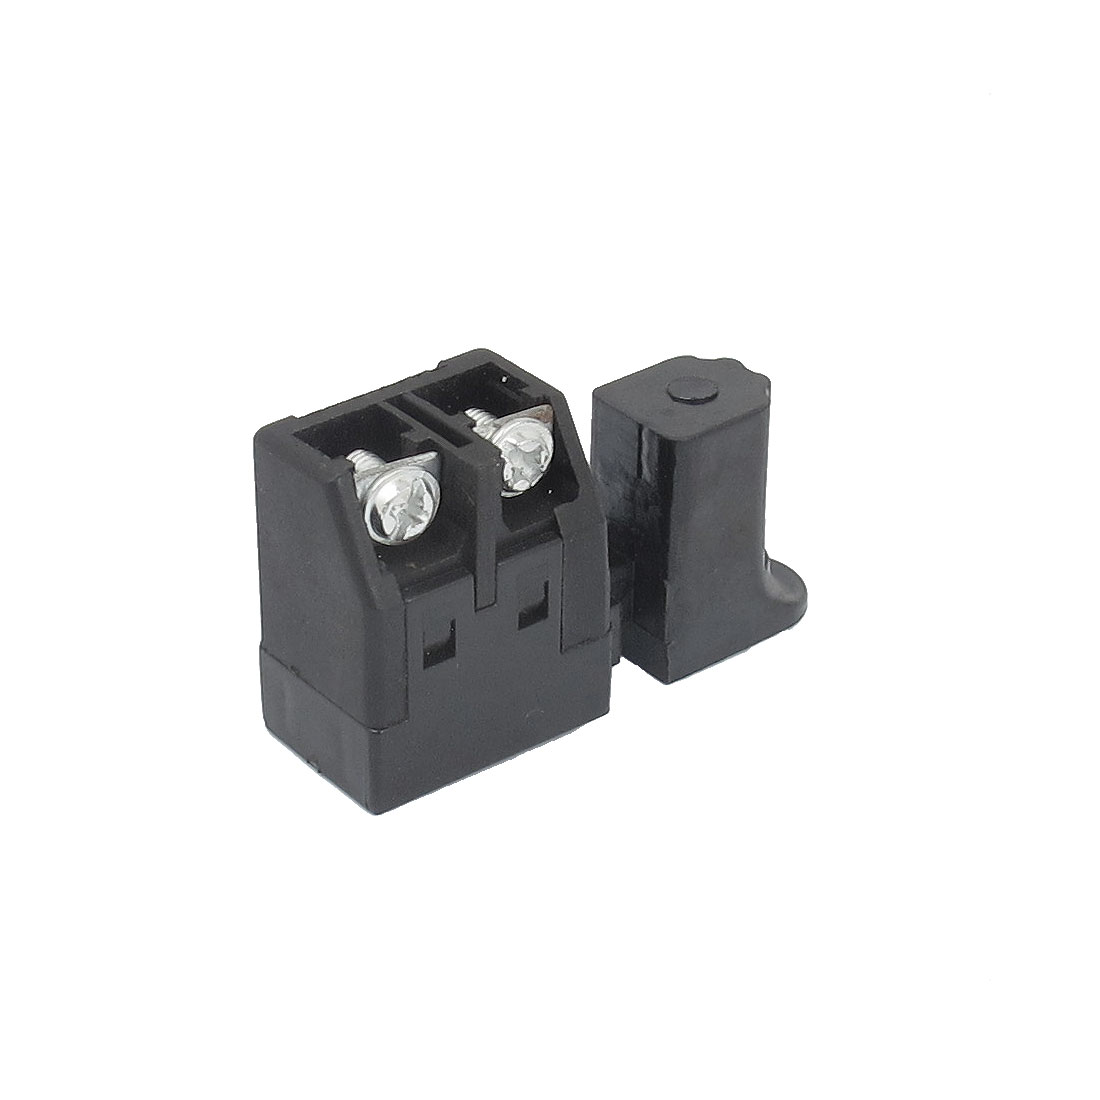 Electric Drill Power Tool SPST NO Momentary Trigger Switch AC 125V 15(12)A AC250V 7.5(6)A FA2-6/1B